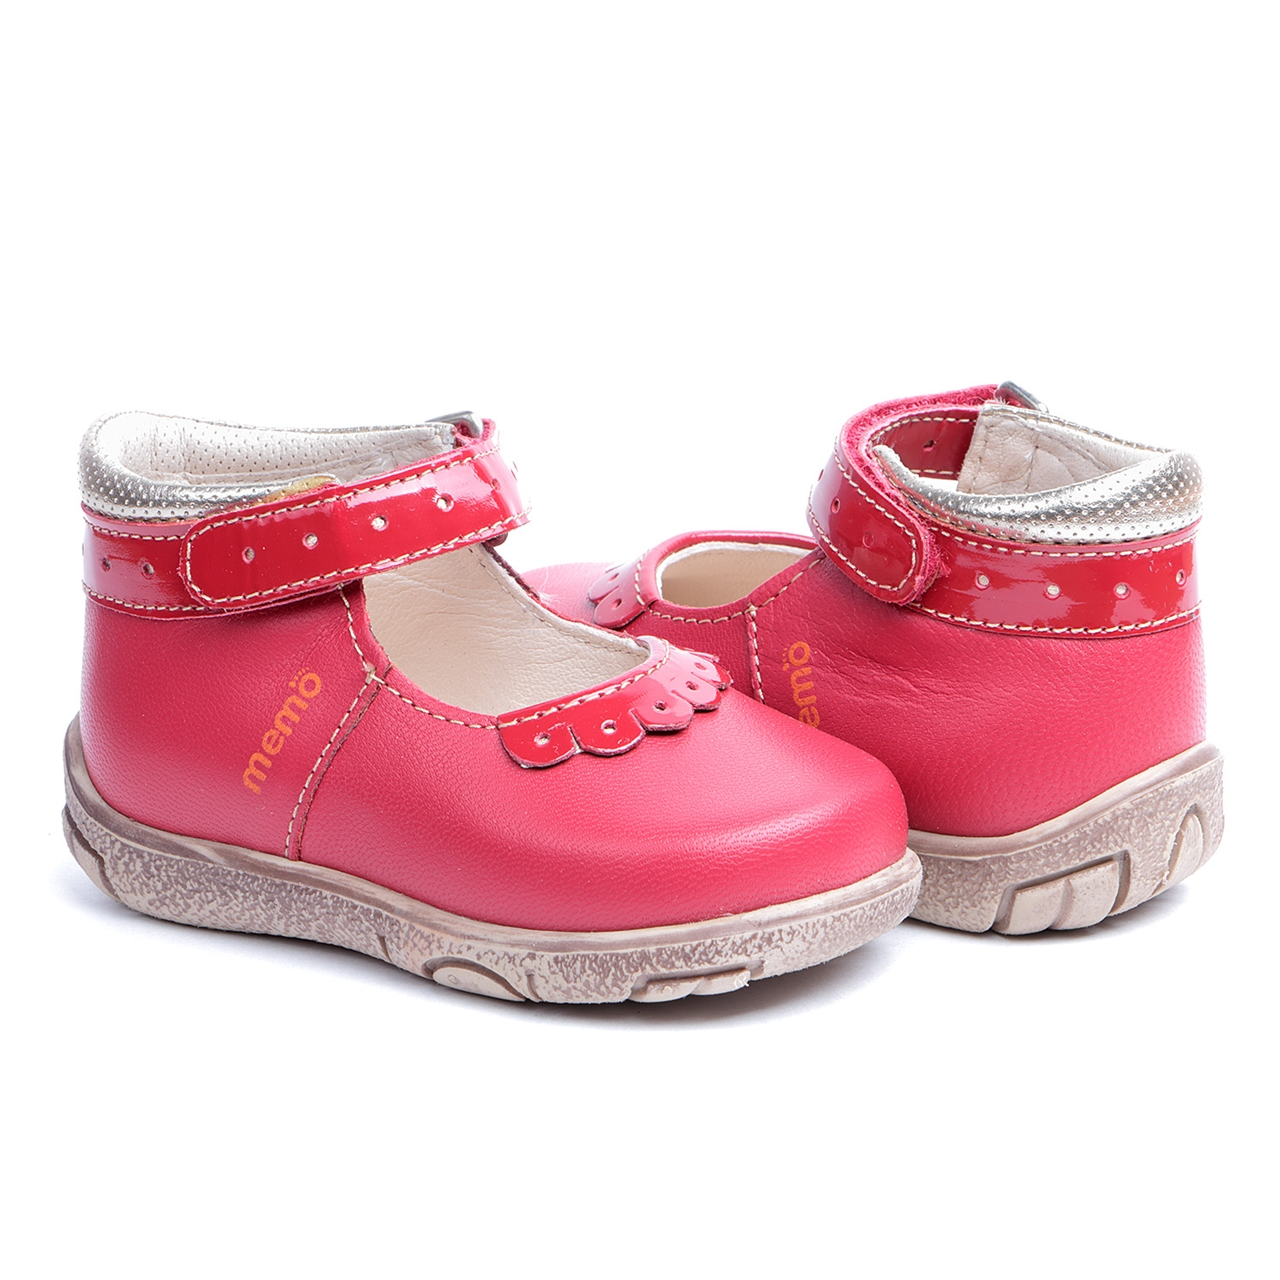 Memo Shoes Memo Fiona 3HA Red Infant & Toddler Girl First